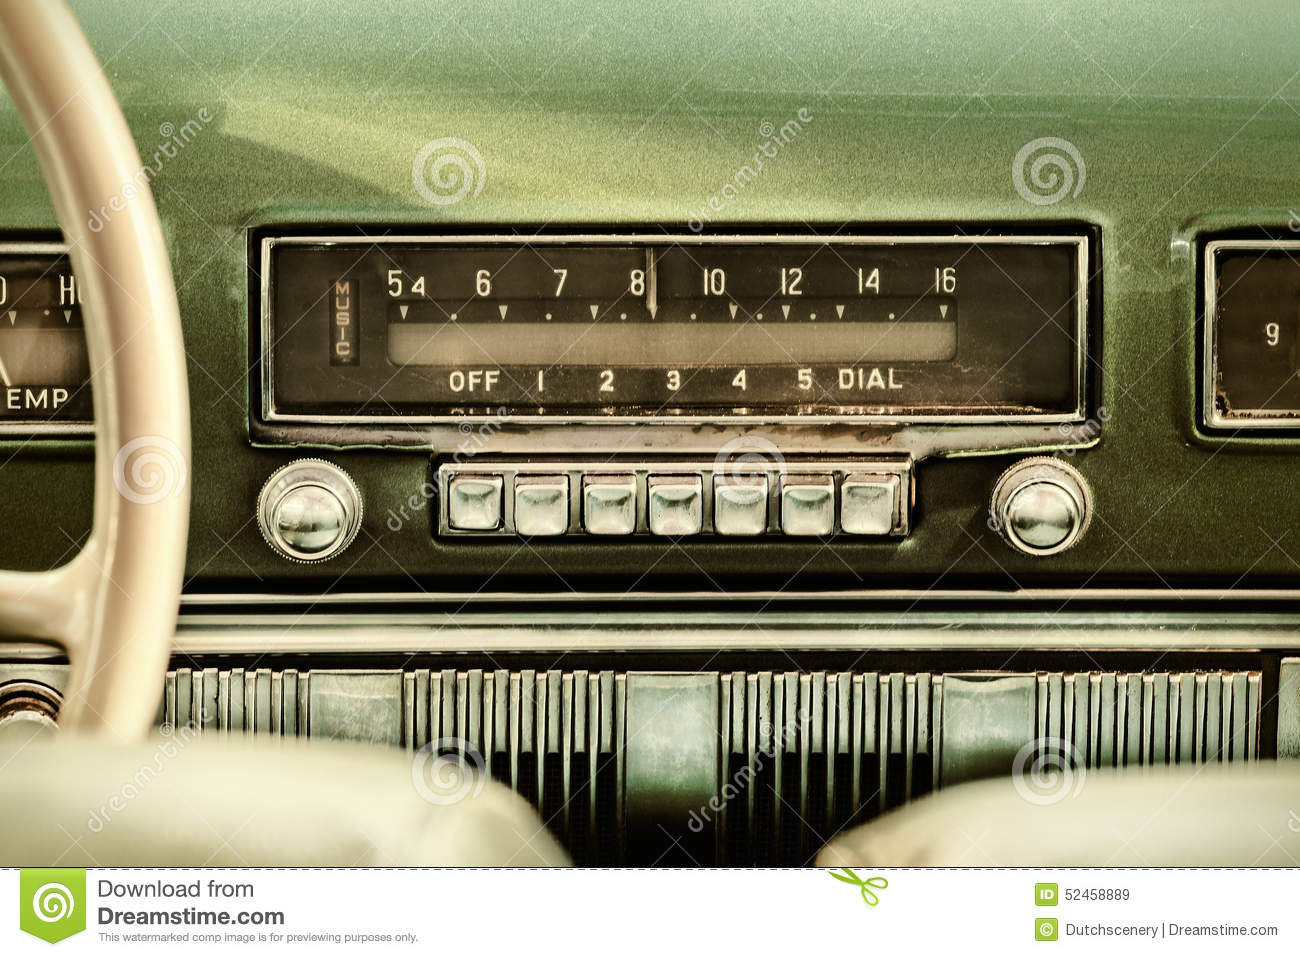 Car Stereo Wallpaper Retro Styled Image Of An Old Car Radio Stock Photo Image